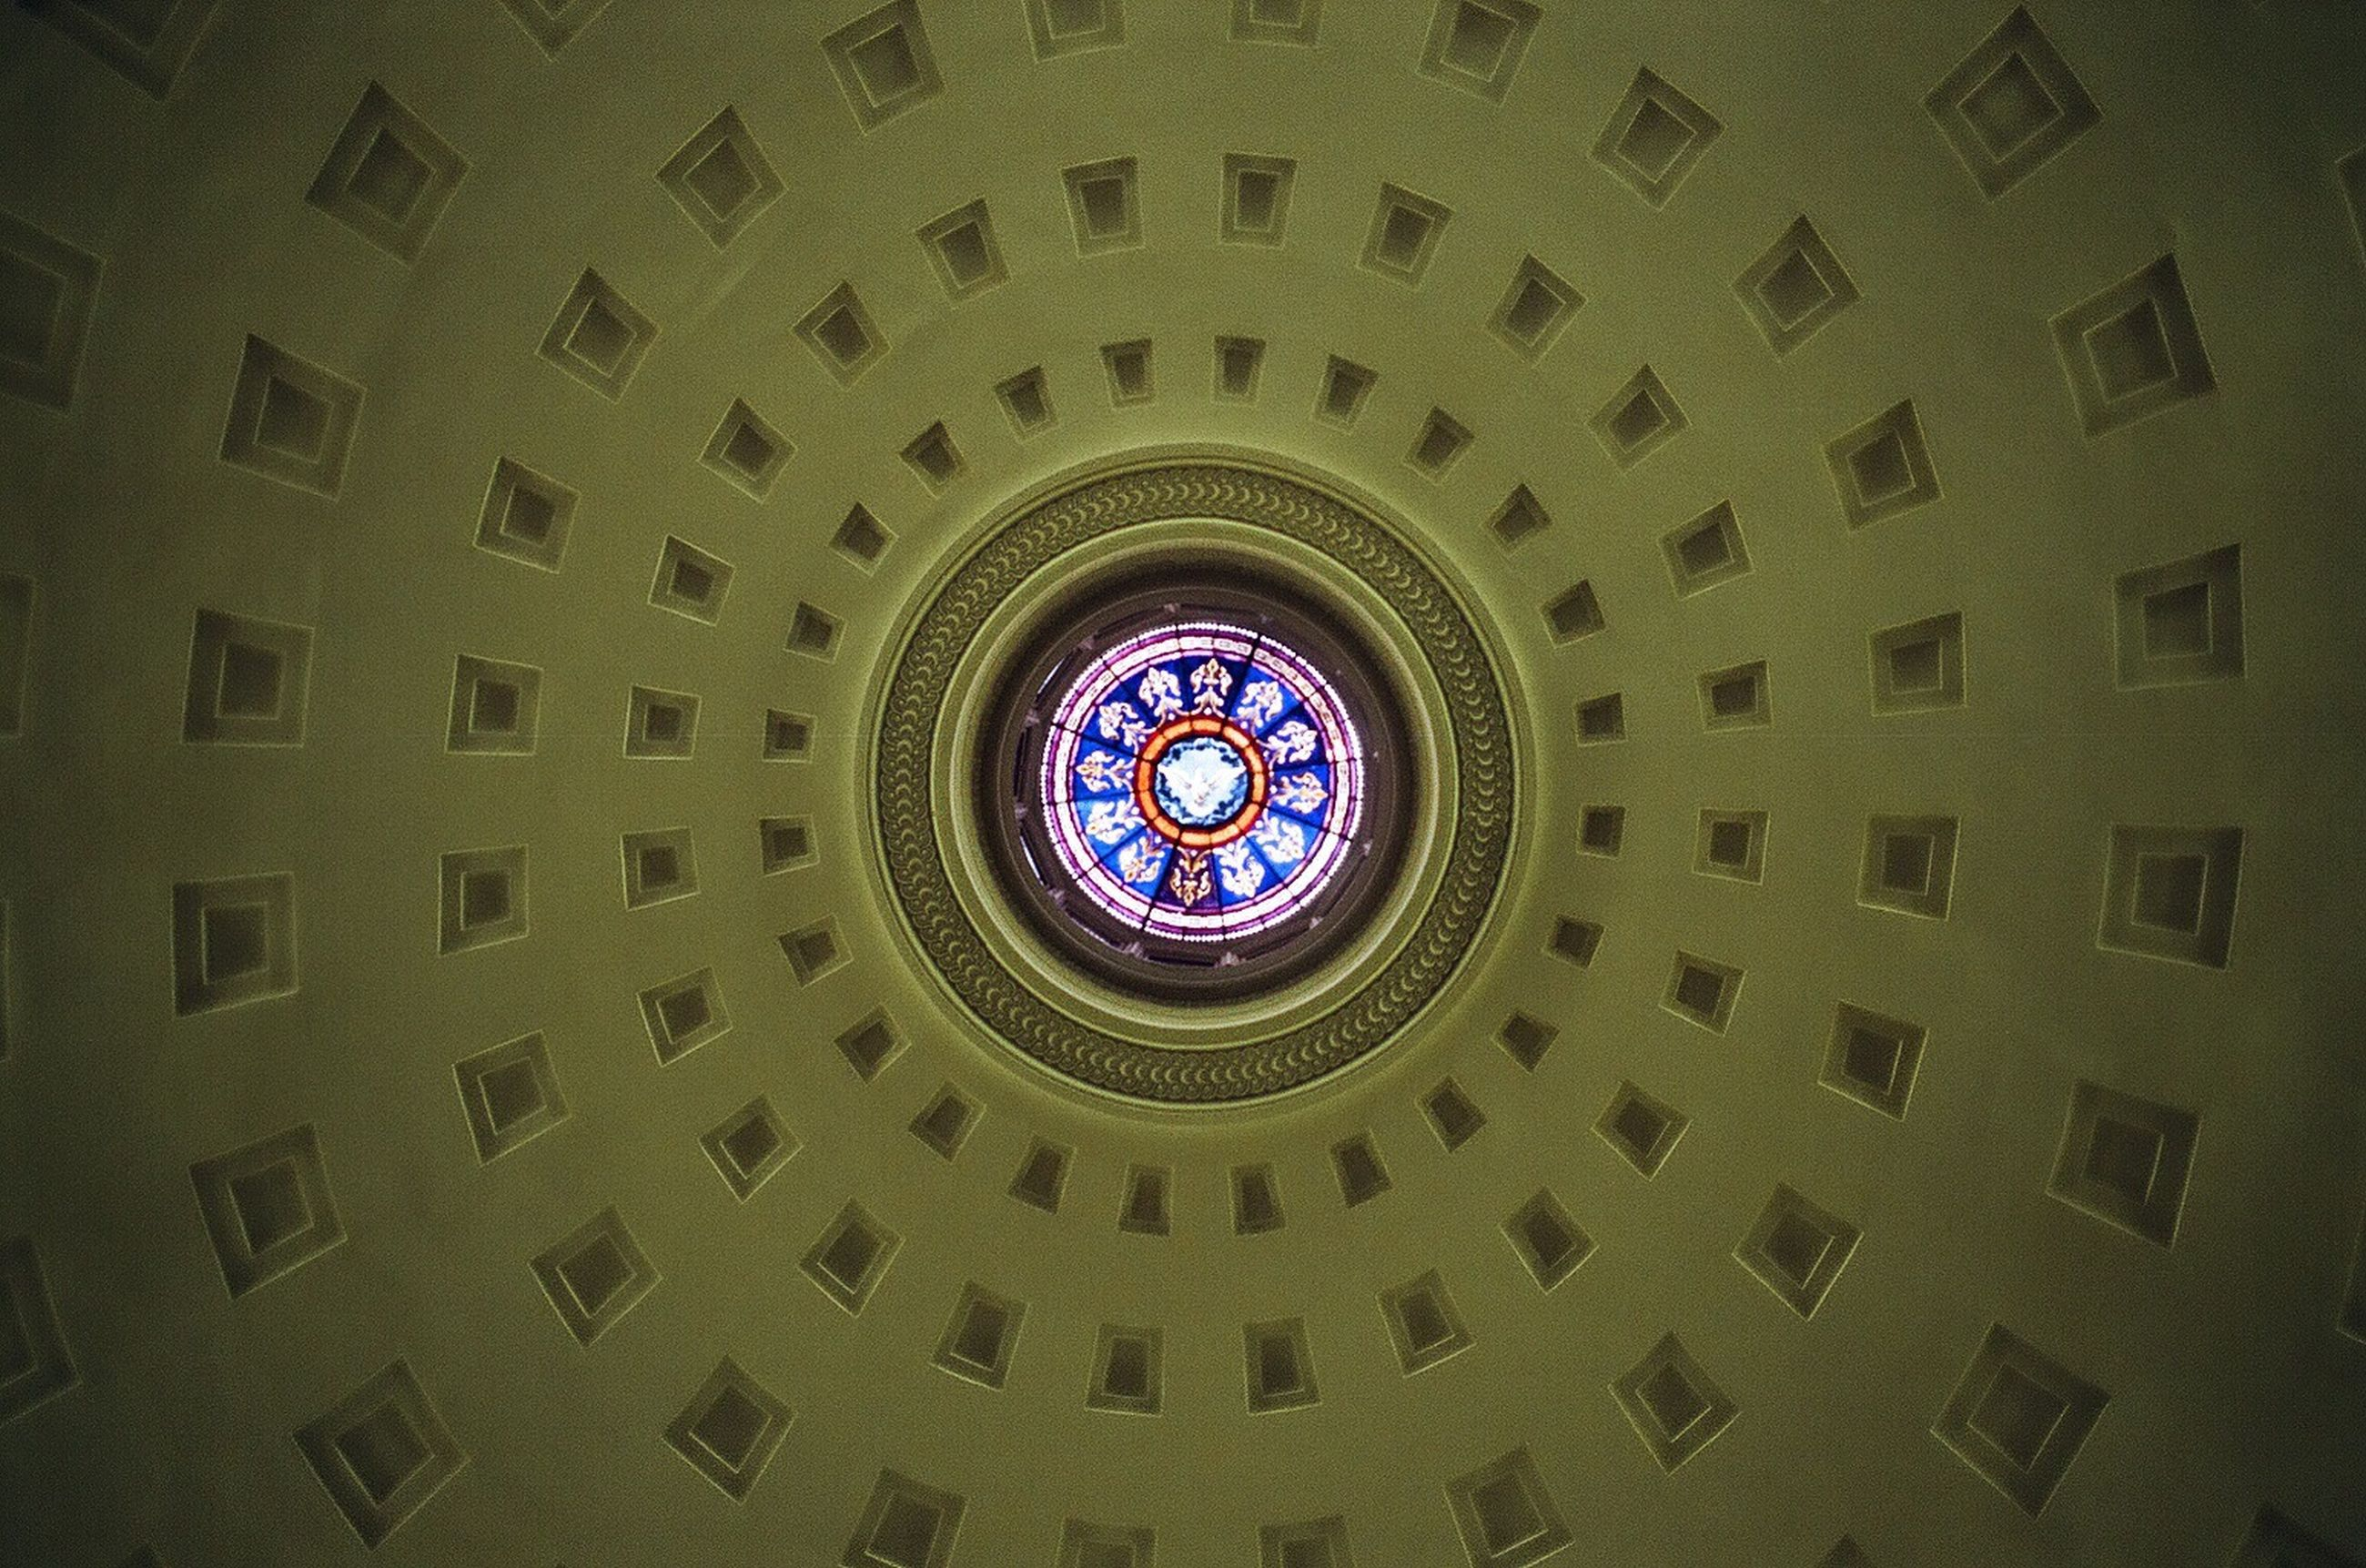 indoors, architecture, circle, ceiling, low angle view, built structure, clock, pattern, time, directly below, full frame, design, geometric shape, glass - material, backgrounds, architectural feature, arch, window, skylight, no people